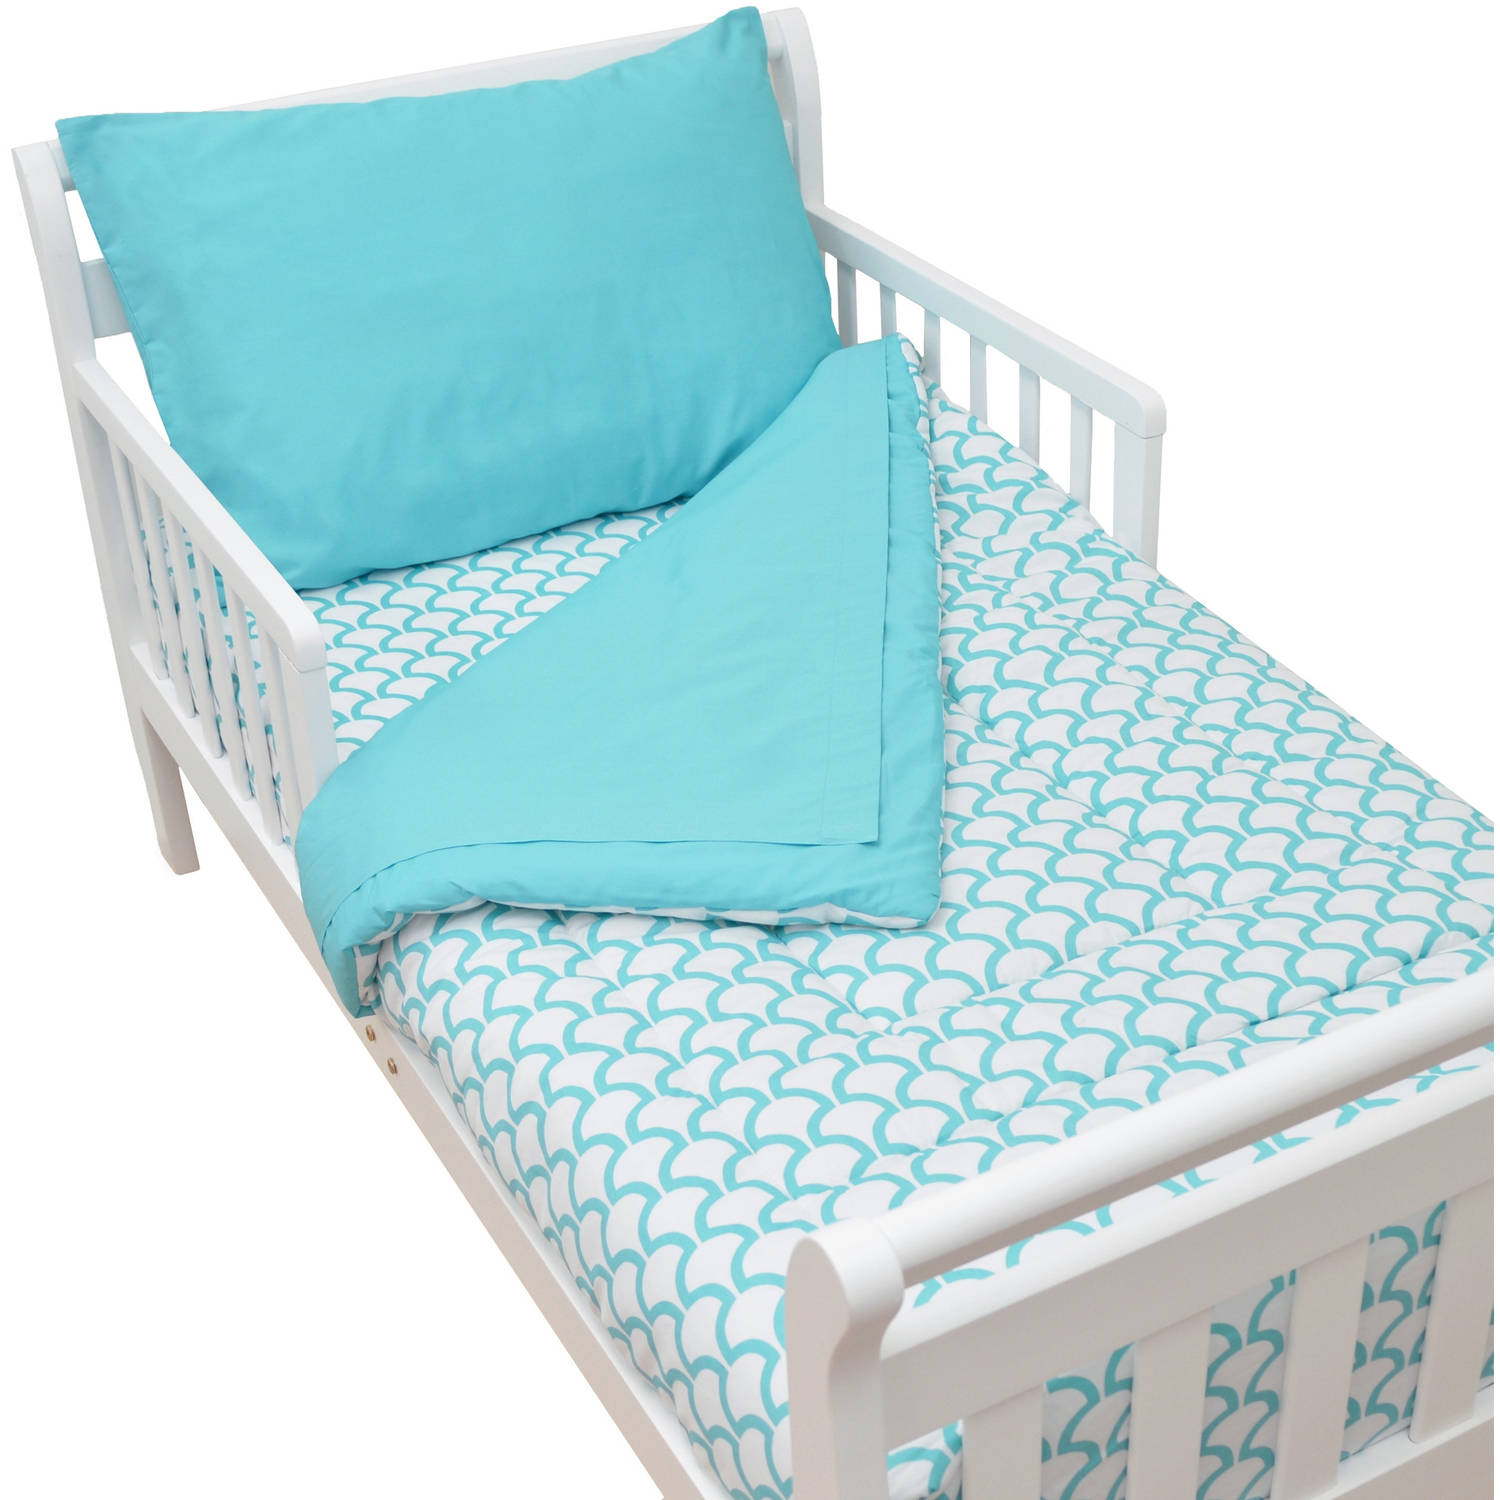 American Baby Company 100% Cotton Percale 4-Piece Toddler Bedding Set, Aqua Sea Wave